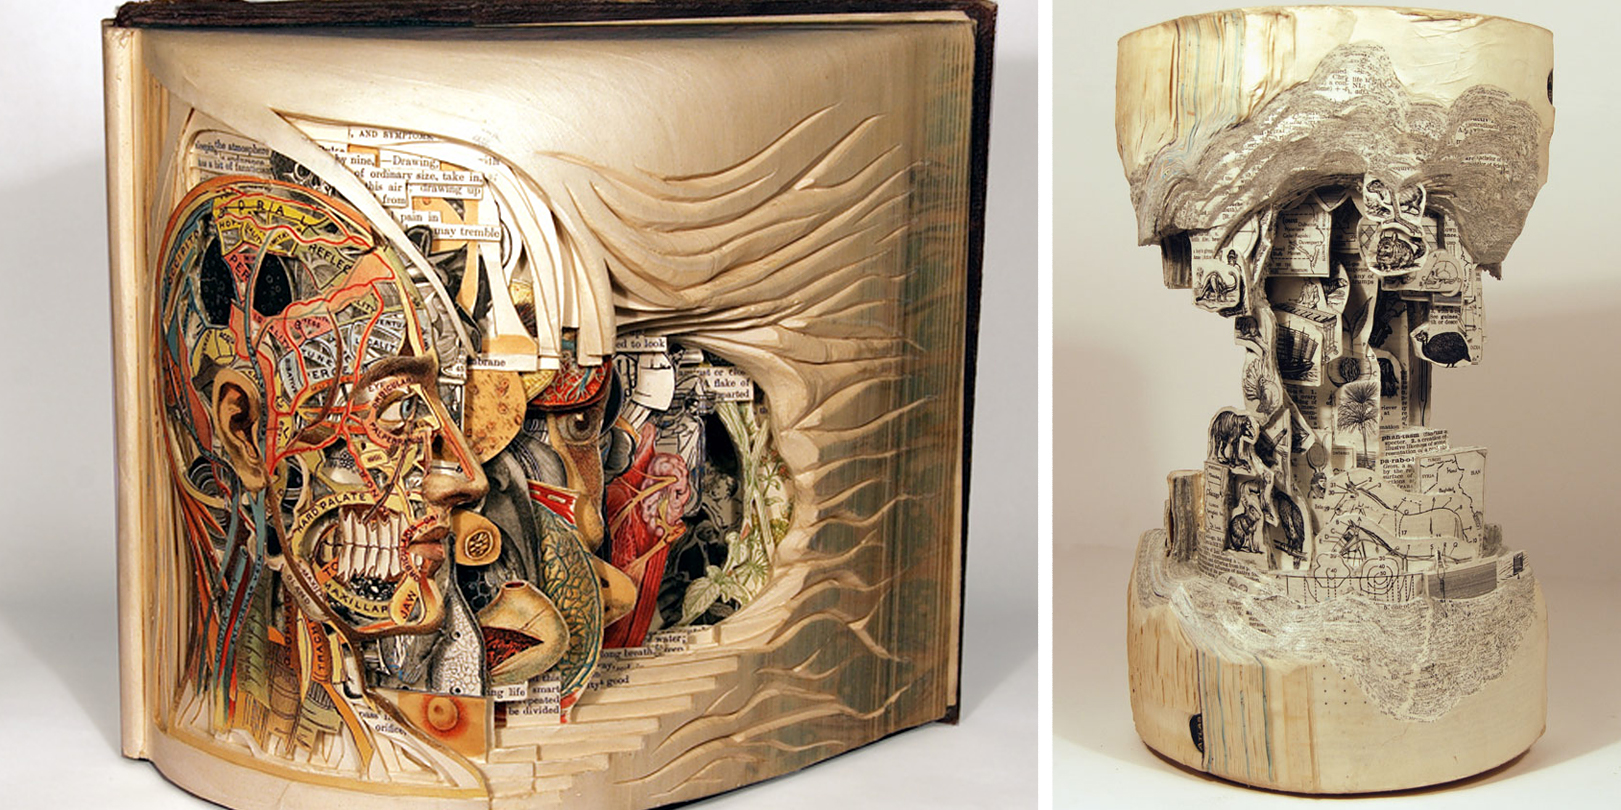 Artist Uses Surgical Tools To Carve Books Into Stunning